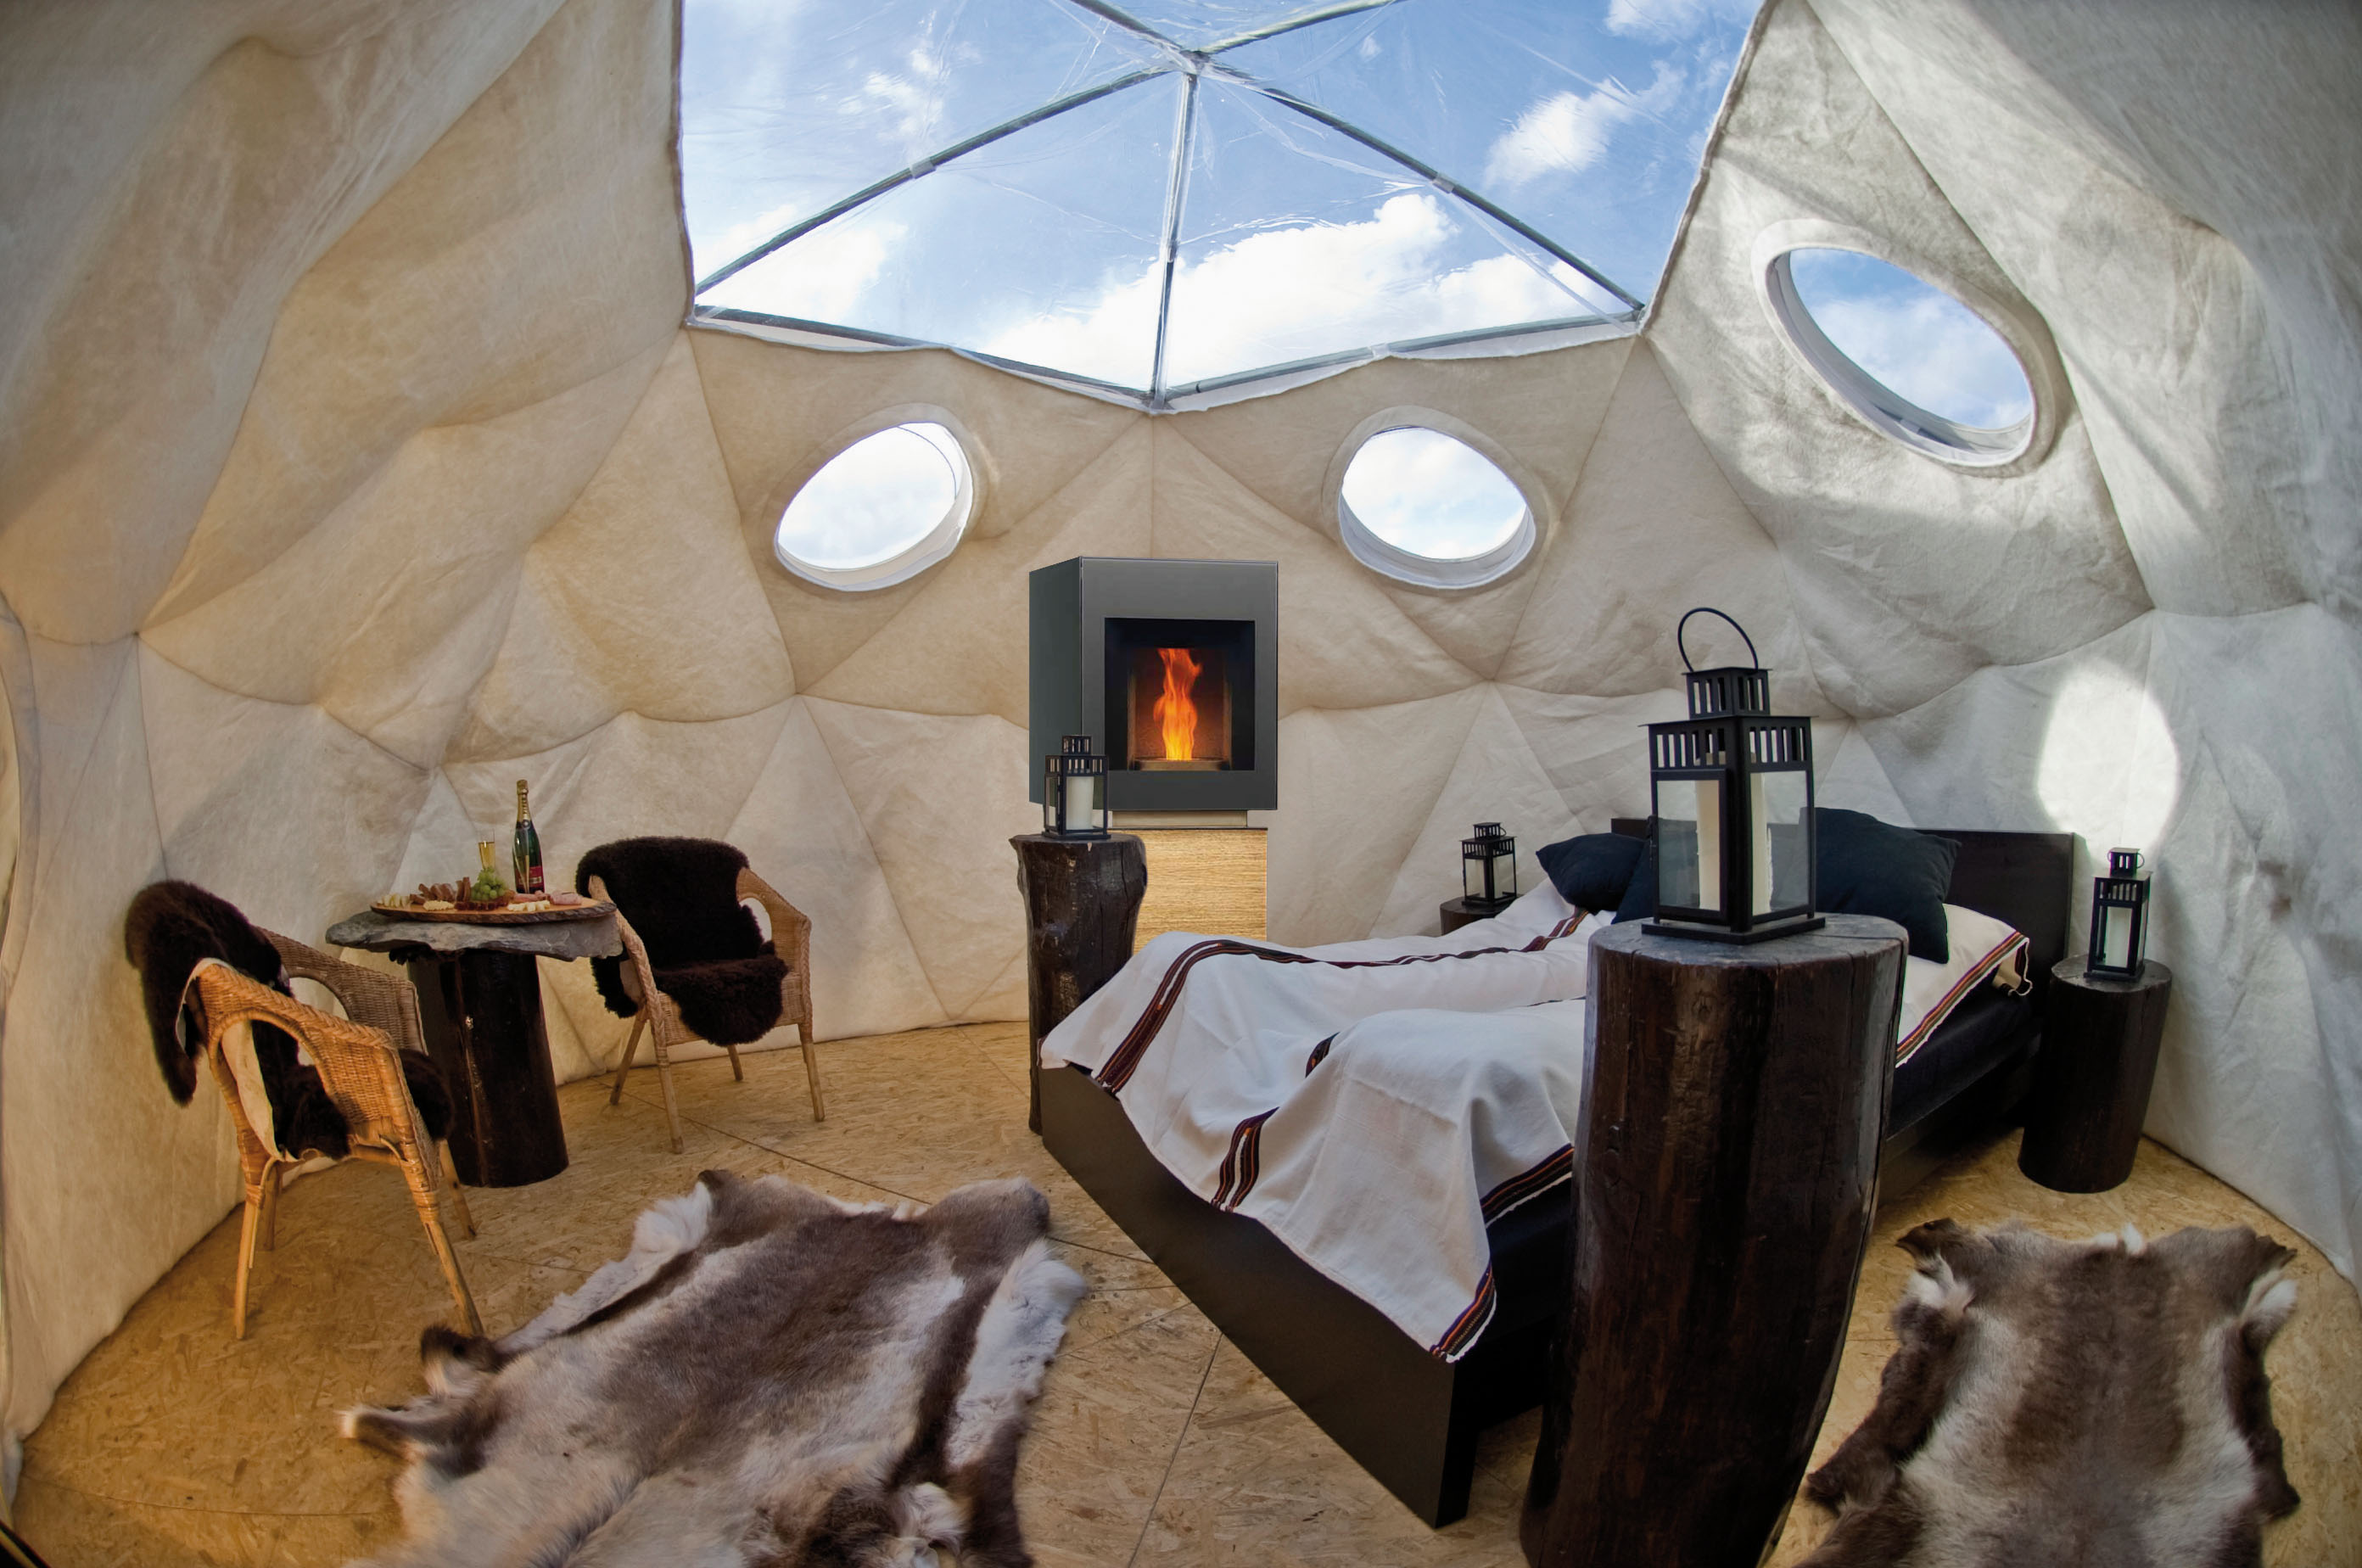 glamping dome home by pacific domes of oregon geodesic dome homes by pacific domes of oregon